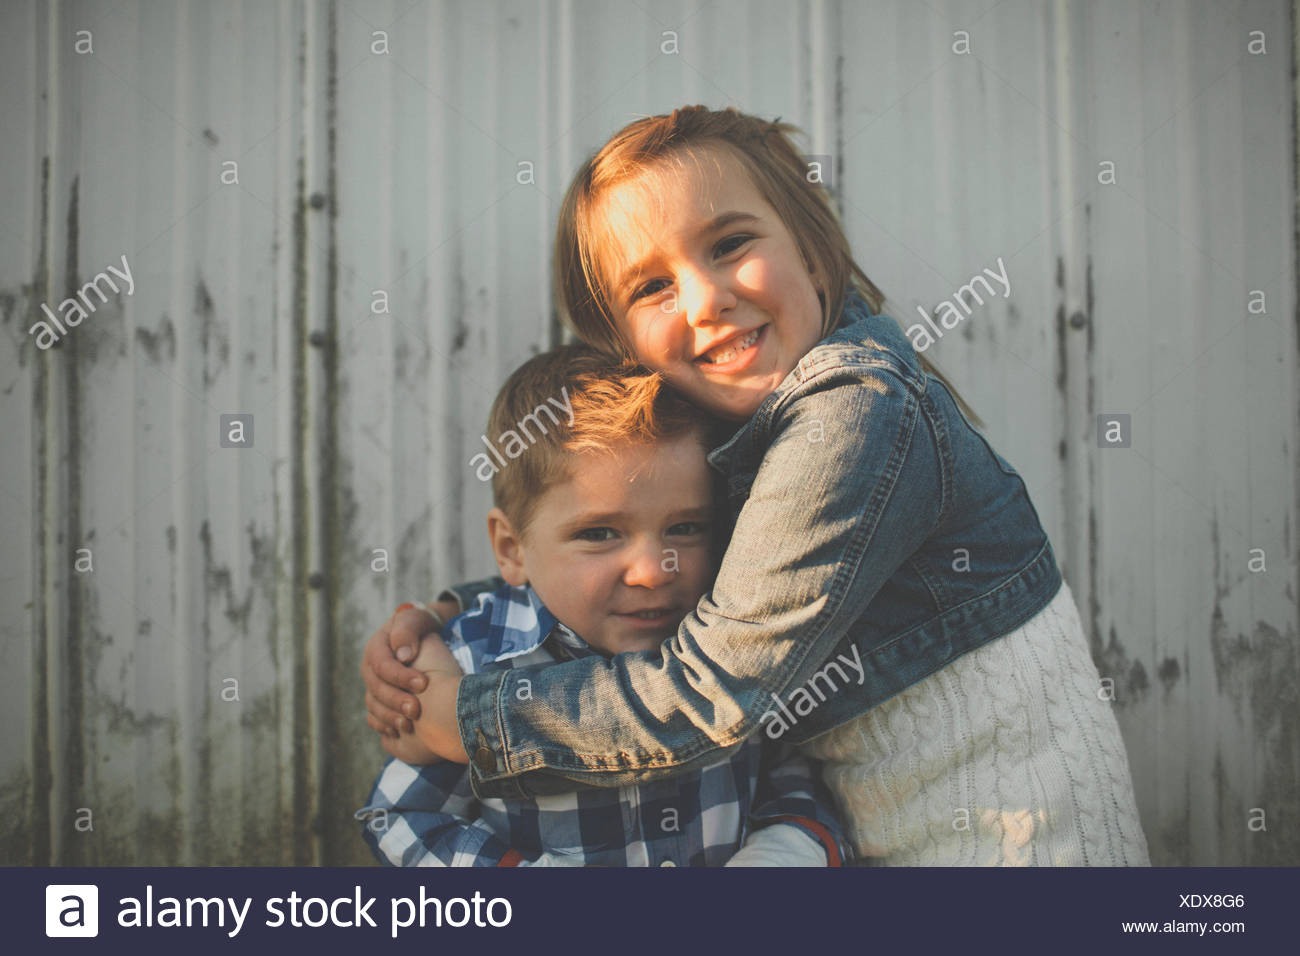 A young girl gives her younger brother a hug. - Stock Image